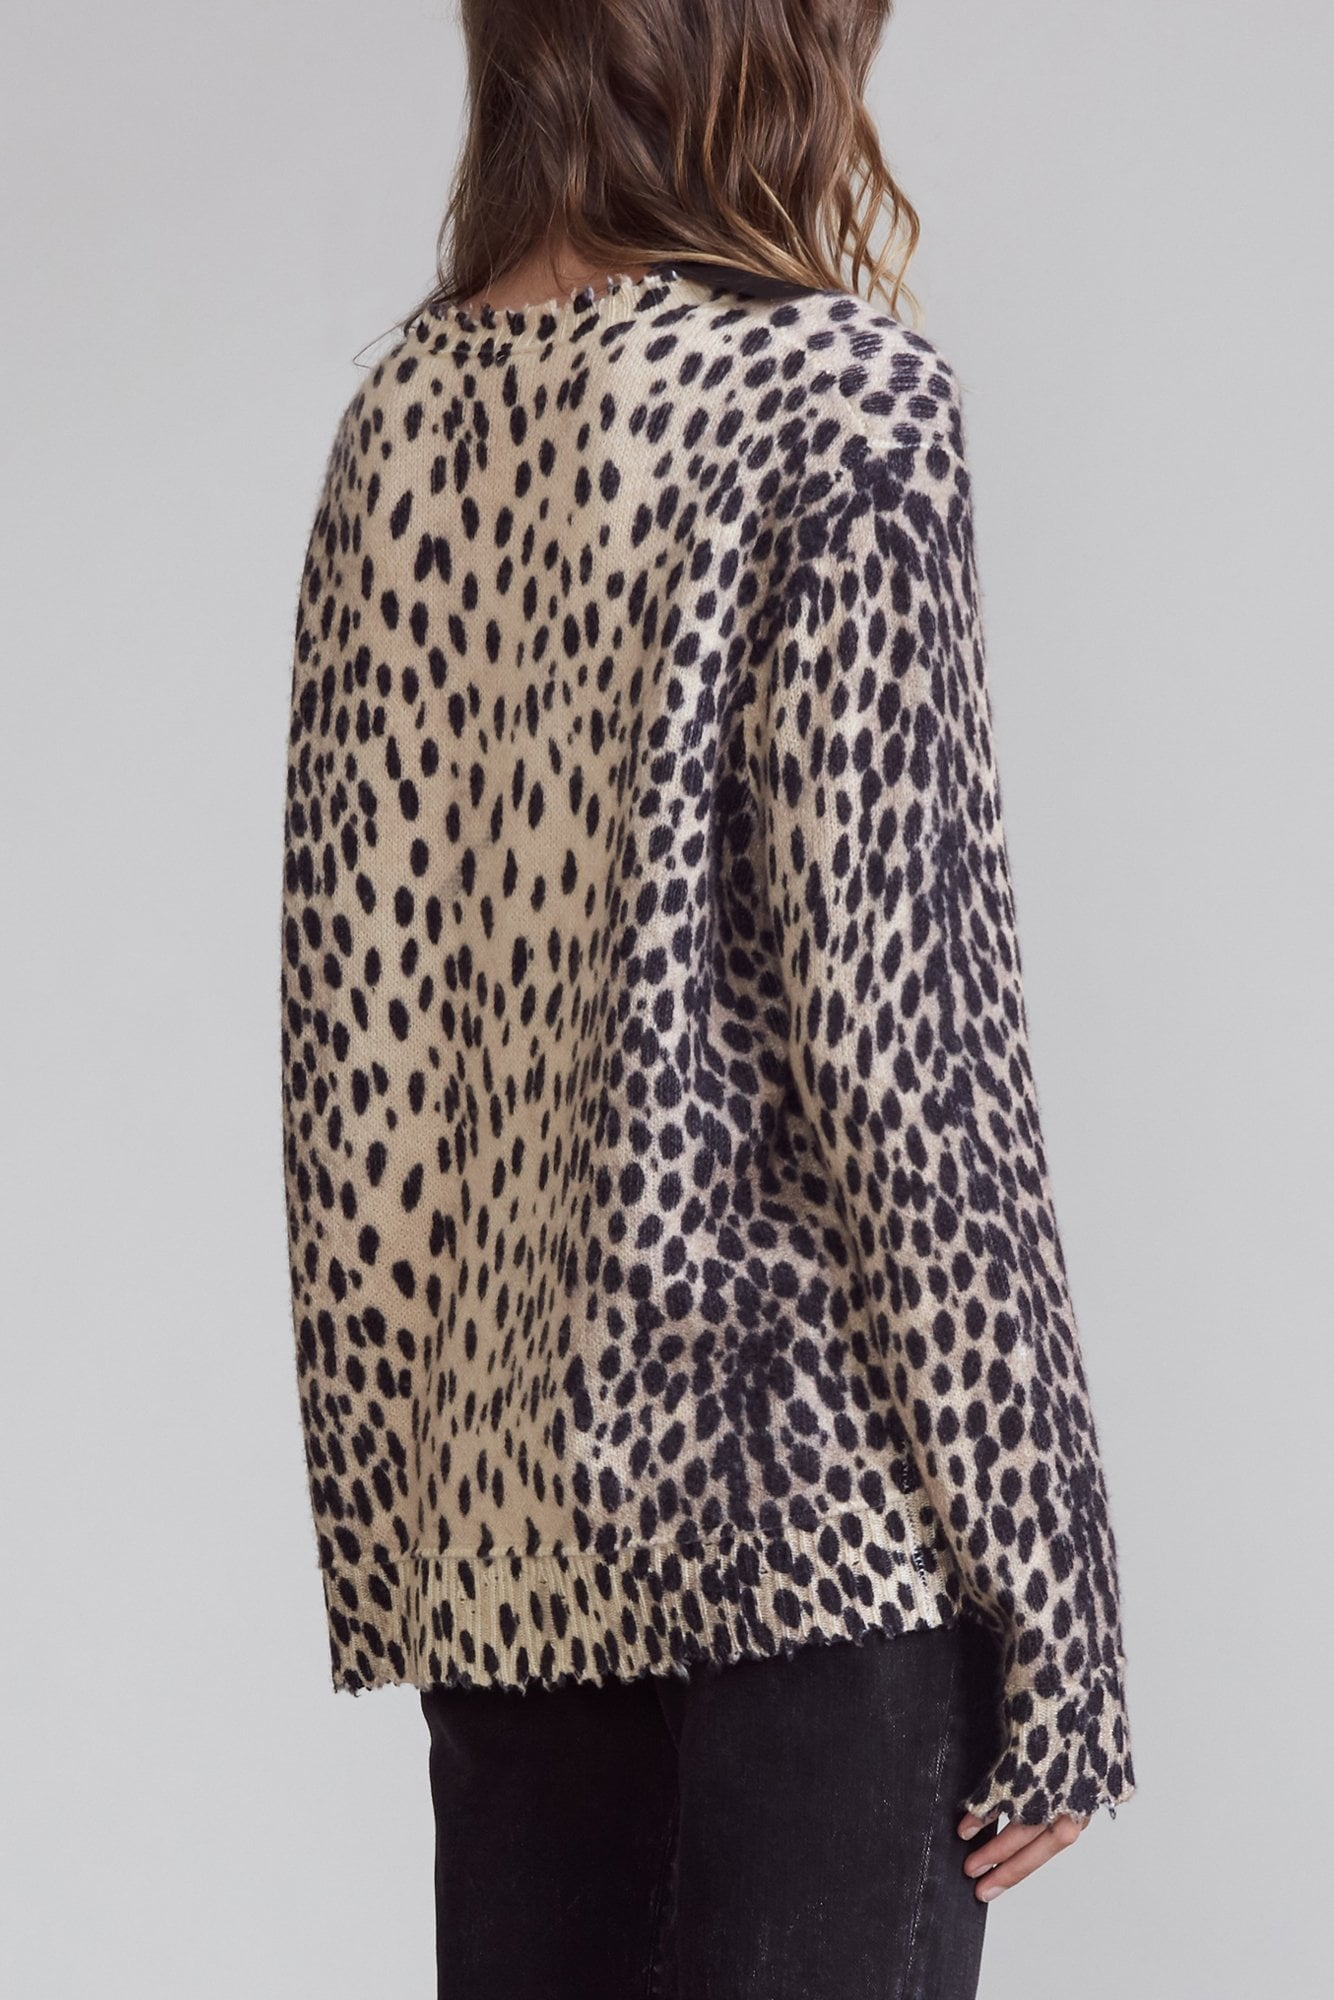 Cashmere Crewneck Sweater - Cheetah